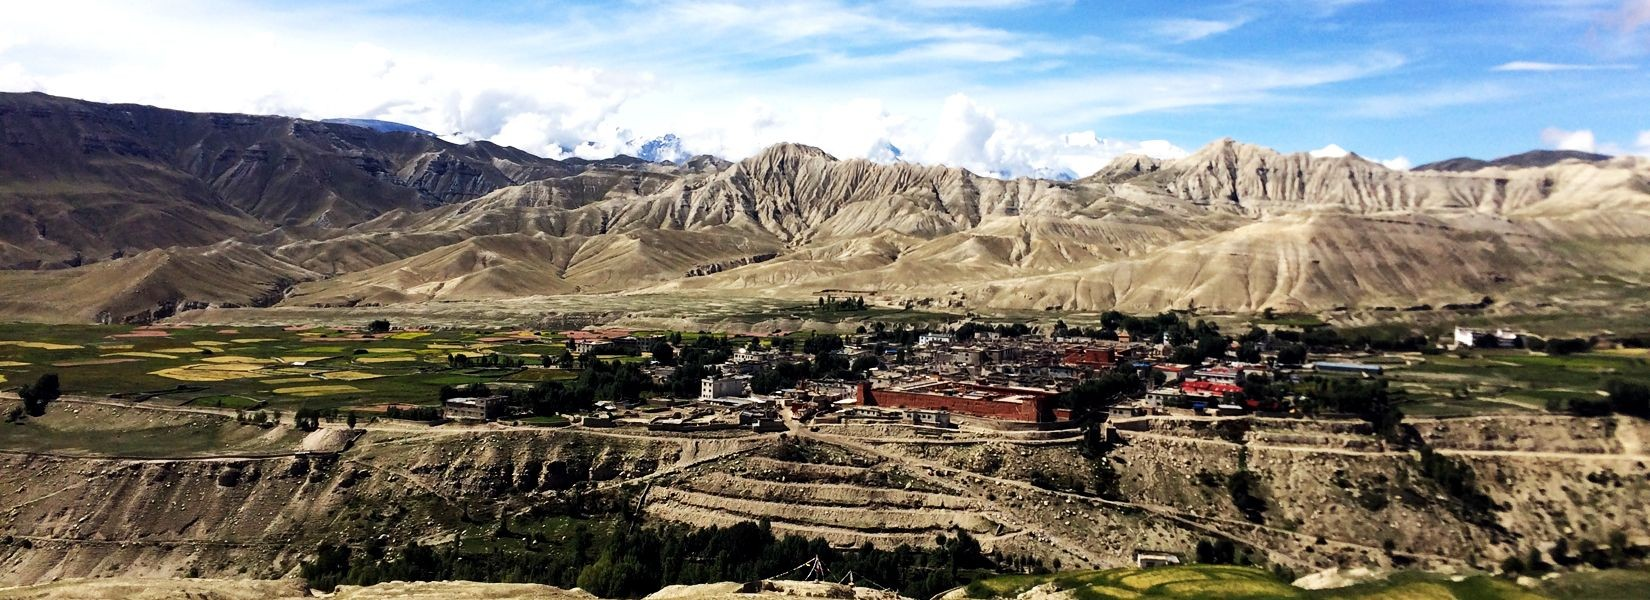 Upper Mustang, Upper Mustang tour, Upper Mustang Lomanthang, Lomanthang, Upper Mustang Overland Tour, Upper Mustang Jeep Tour